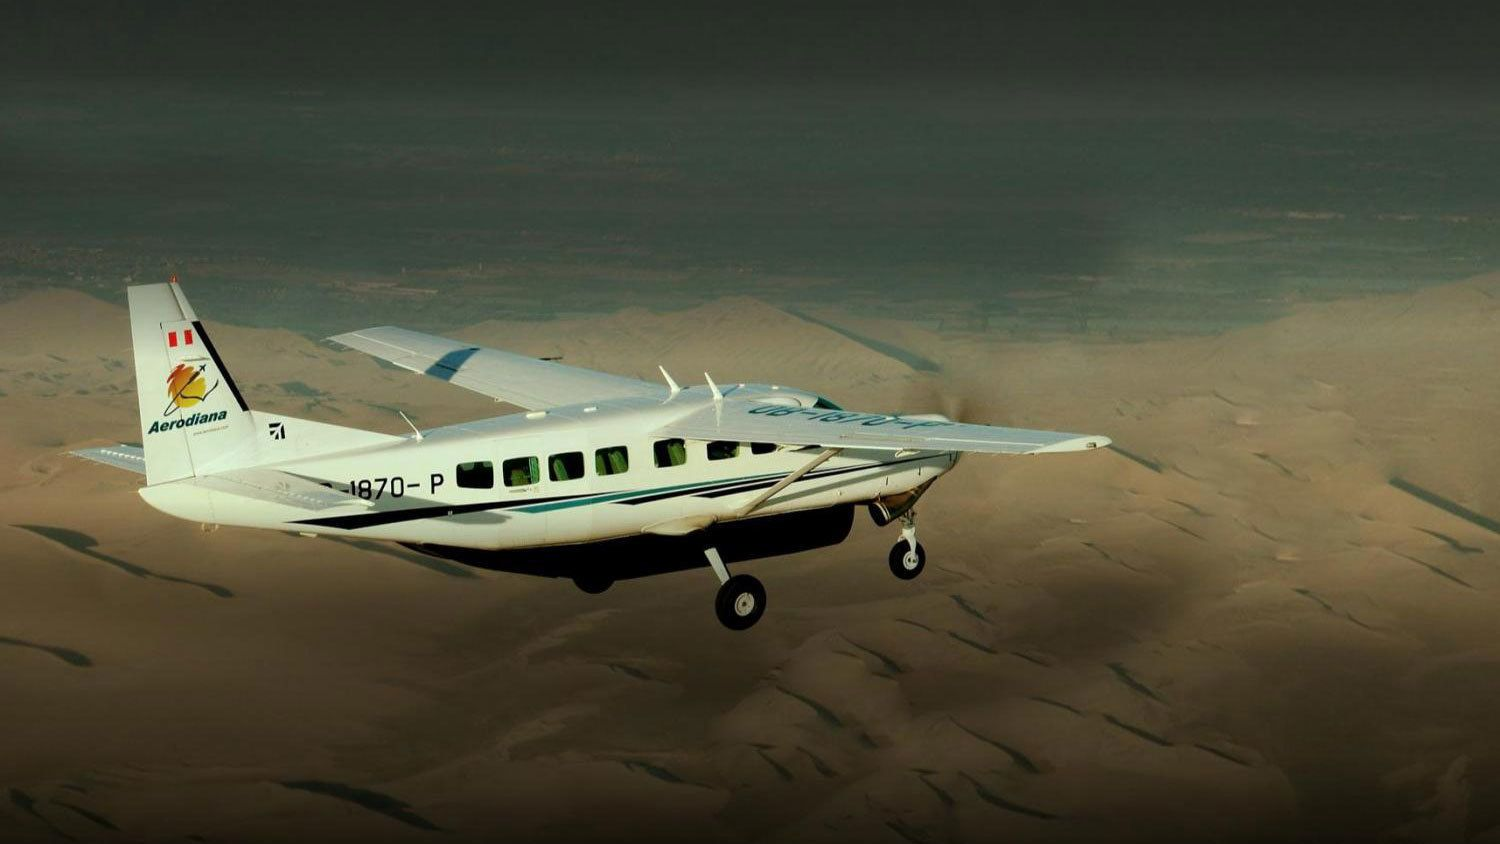 Board a prop plane to experience a unique view of the Nazca Lines